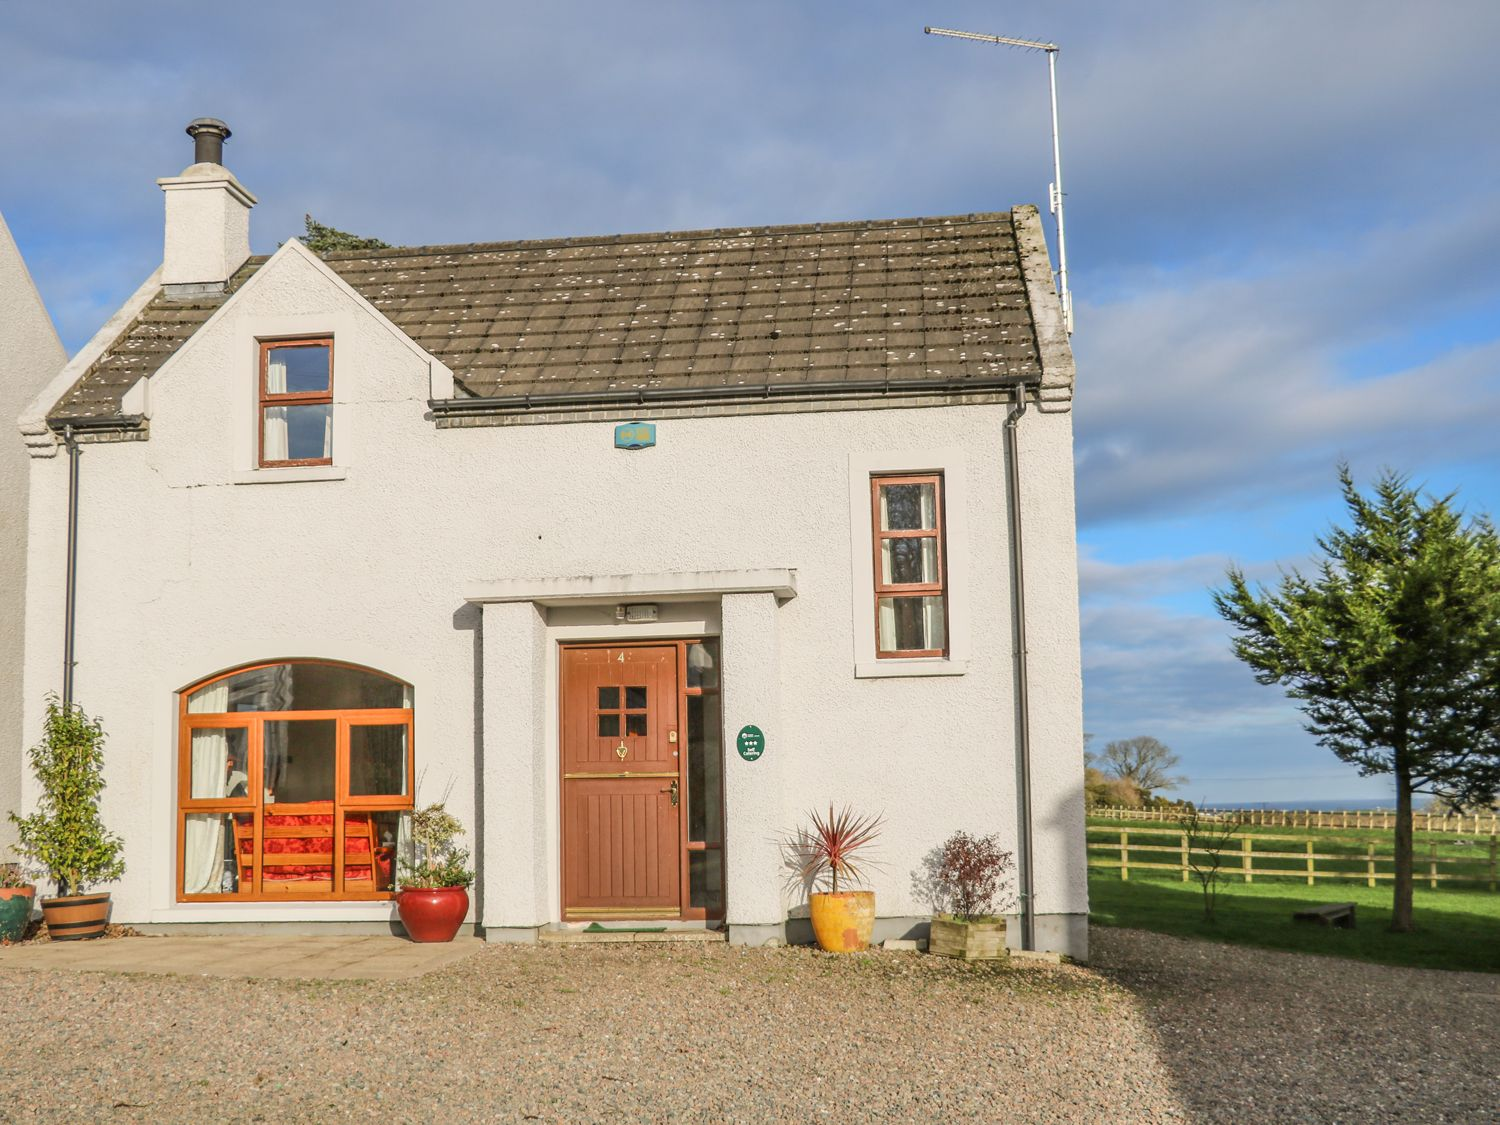 Cottage 4 - Antrim - 1001986 - photo 1